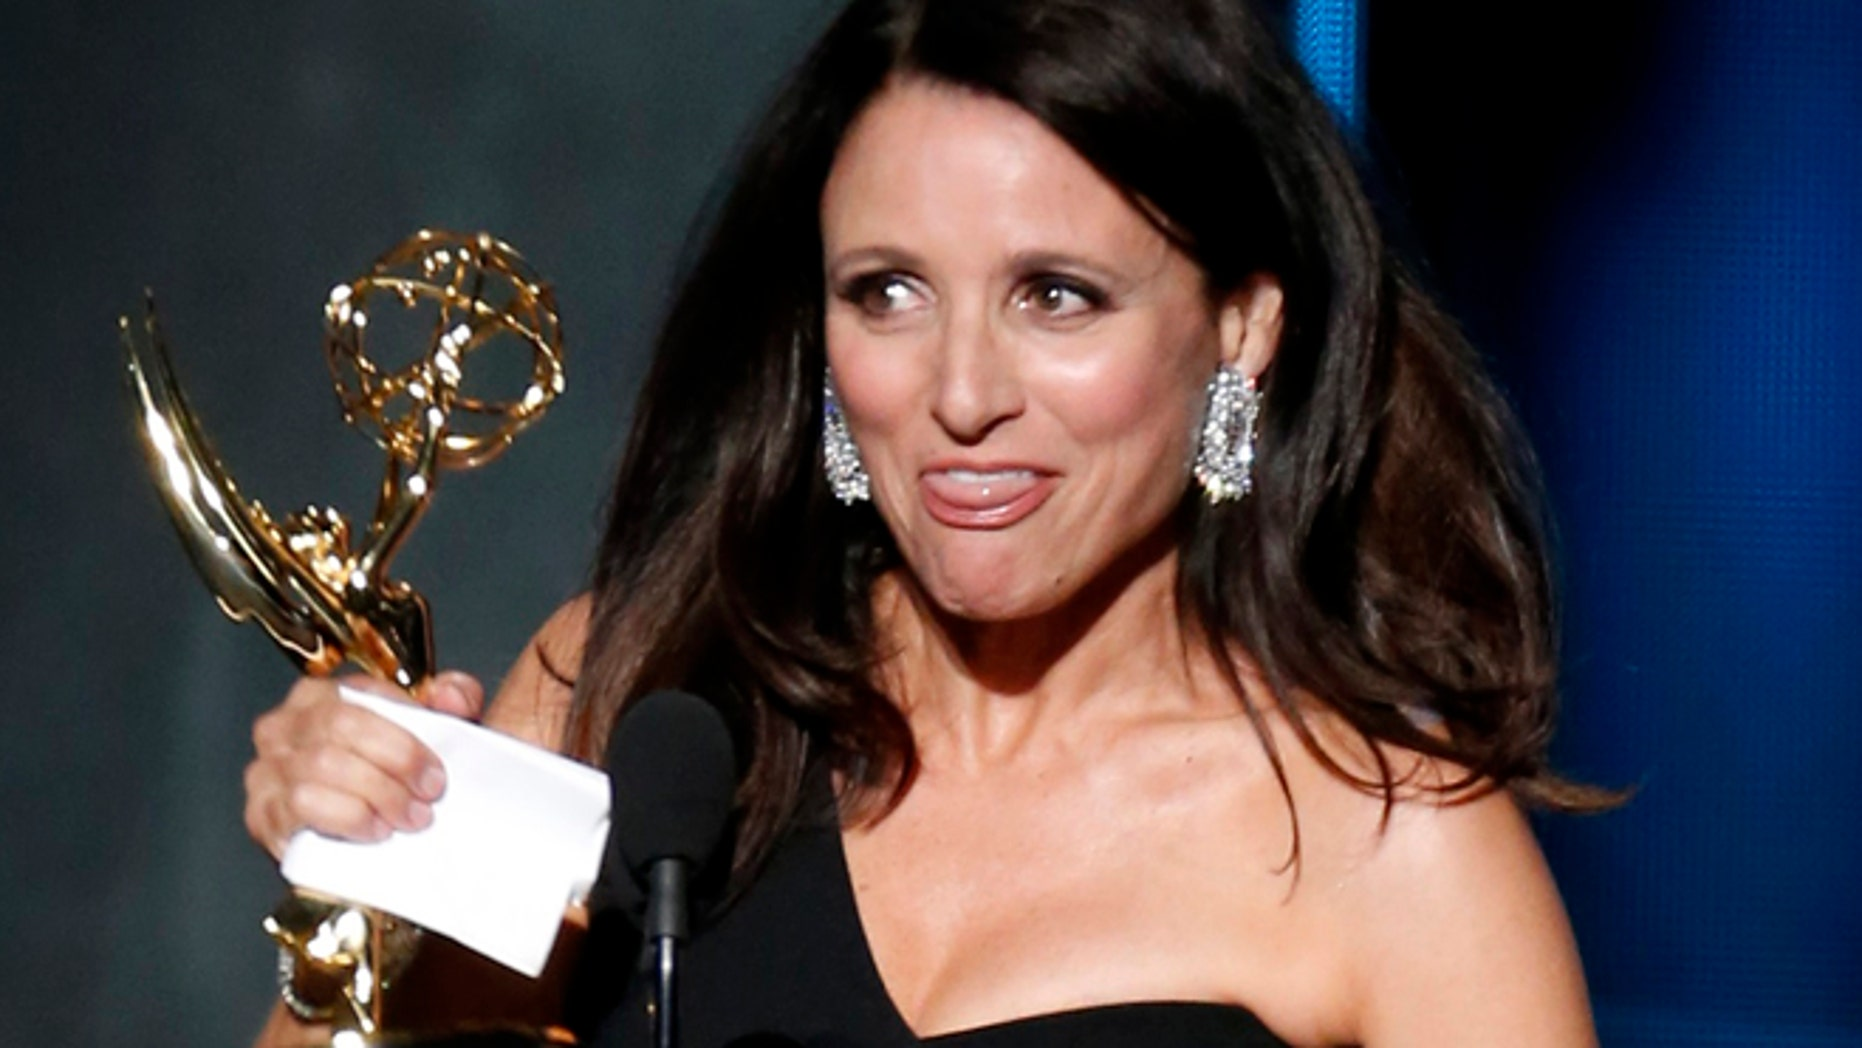 """Julia Louis-Dreyfus accepts the award for Outstanding Lead Actress In A Comedy Series for her role in HBO's """"Veep"""" at the 67th Primetime Emmy Awards in Los Angeles, California September 20, 2015.  REUTERS/Lucy Nicholson - RTS22NB"""